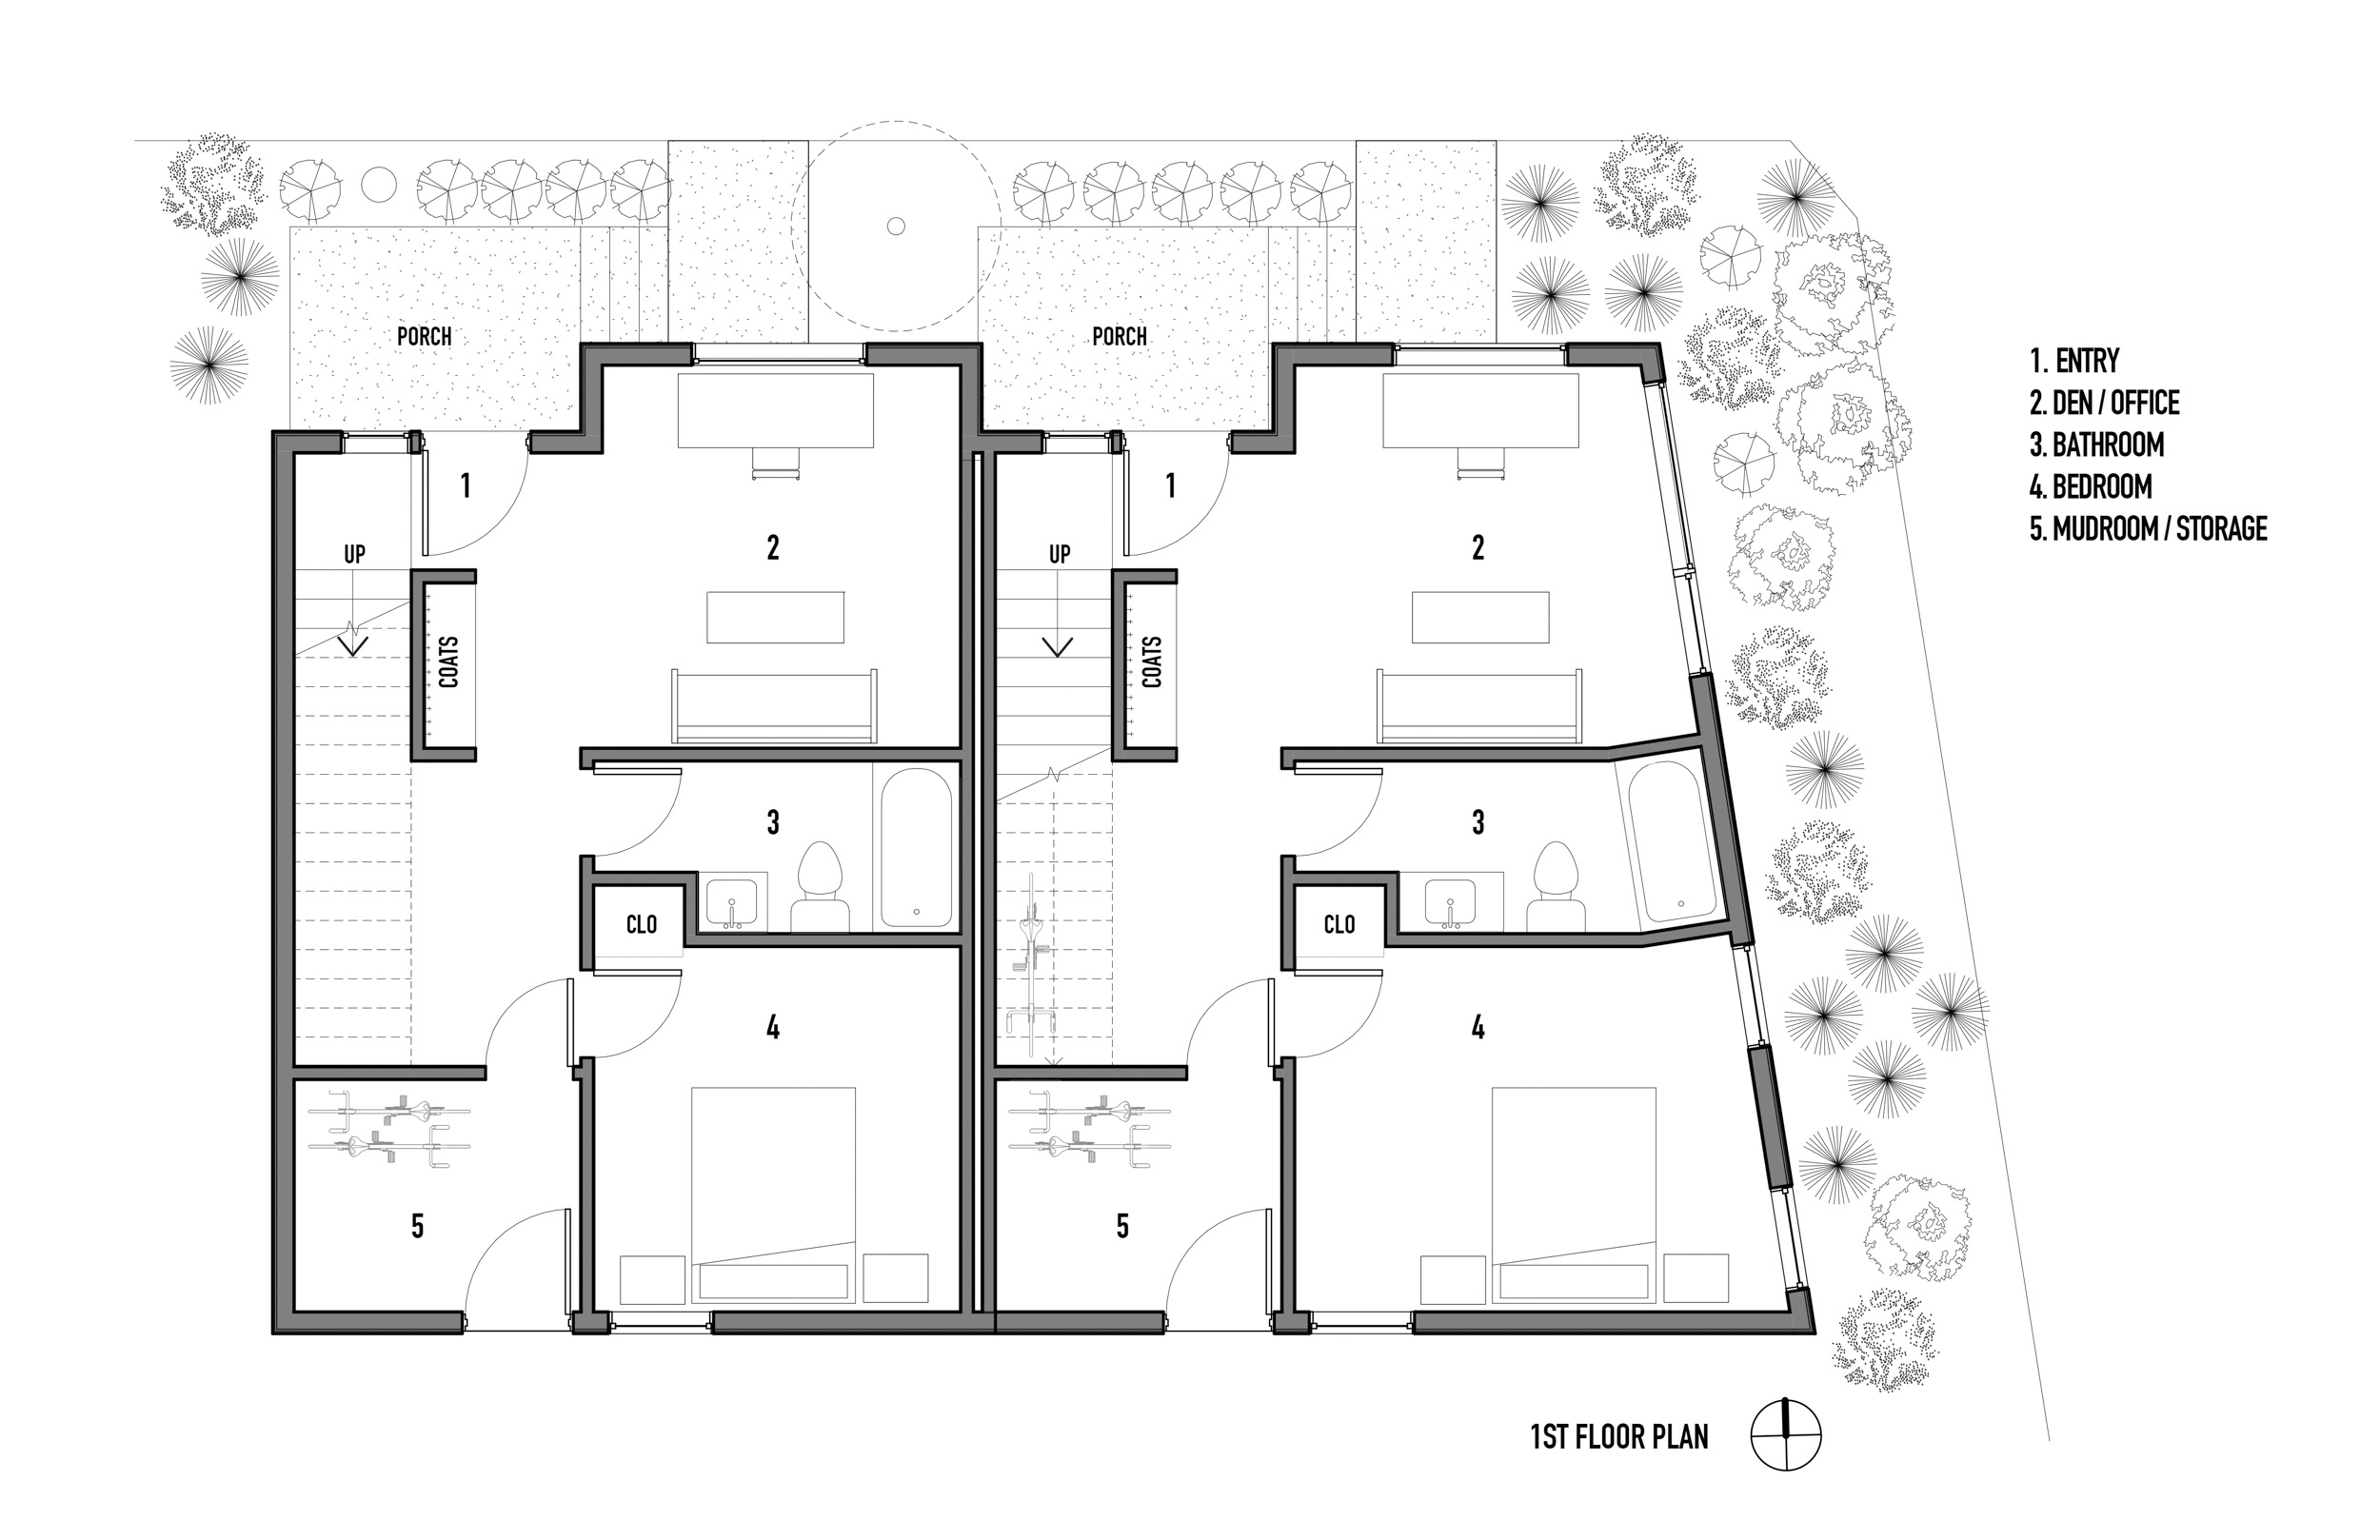 pairallel-wc-studio-architects-townhomes-First-Floor-Plan-drawing.jpg